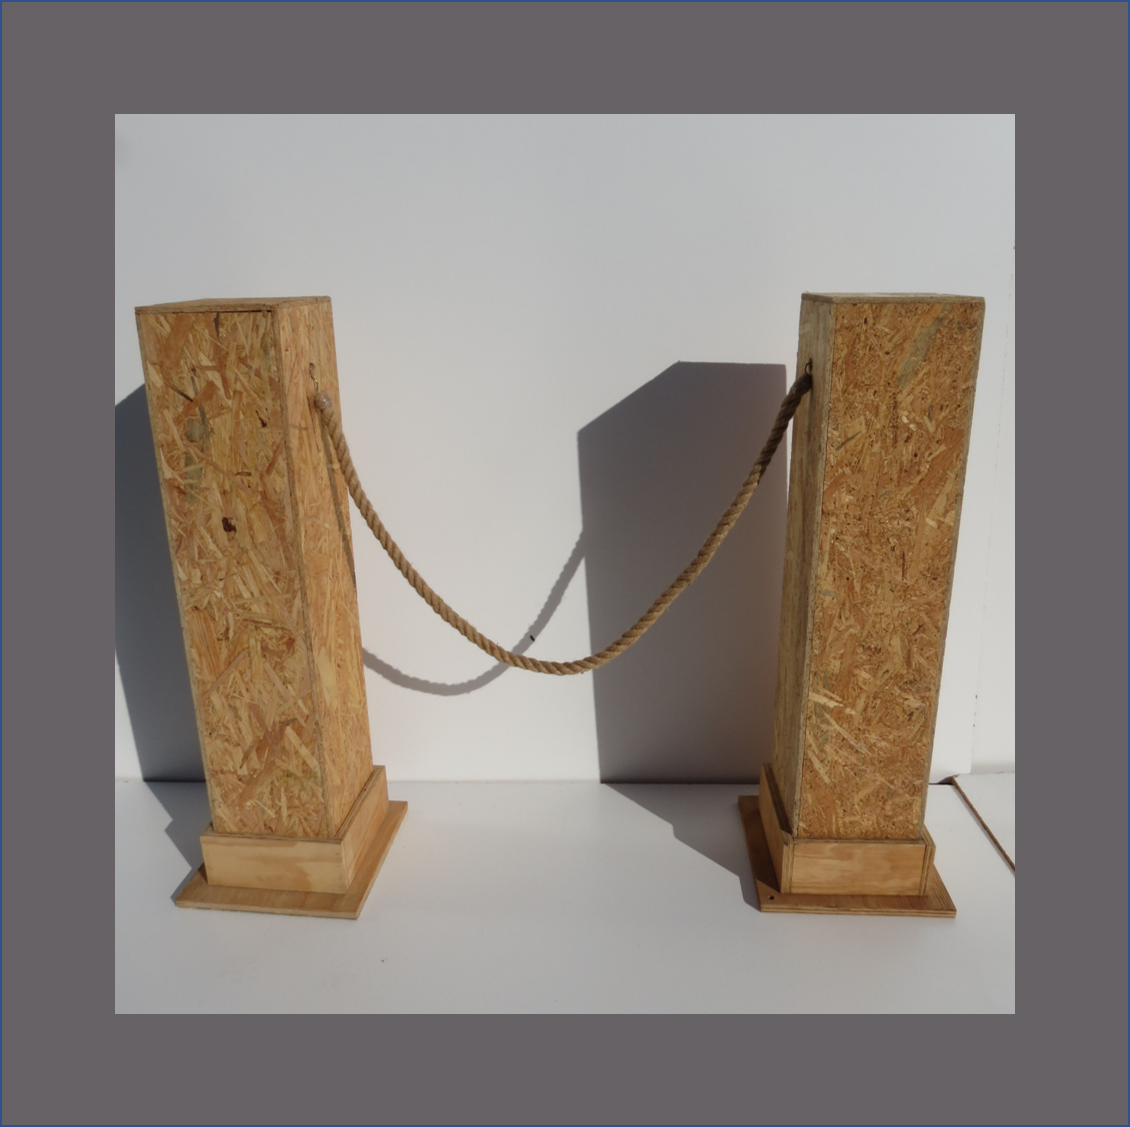 osb-stanchions-with-hessian-rope